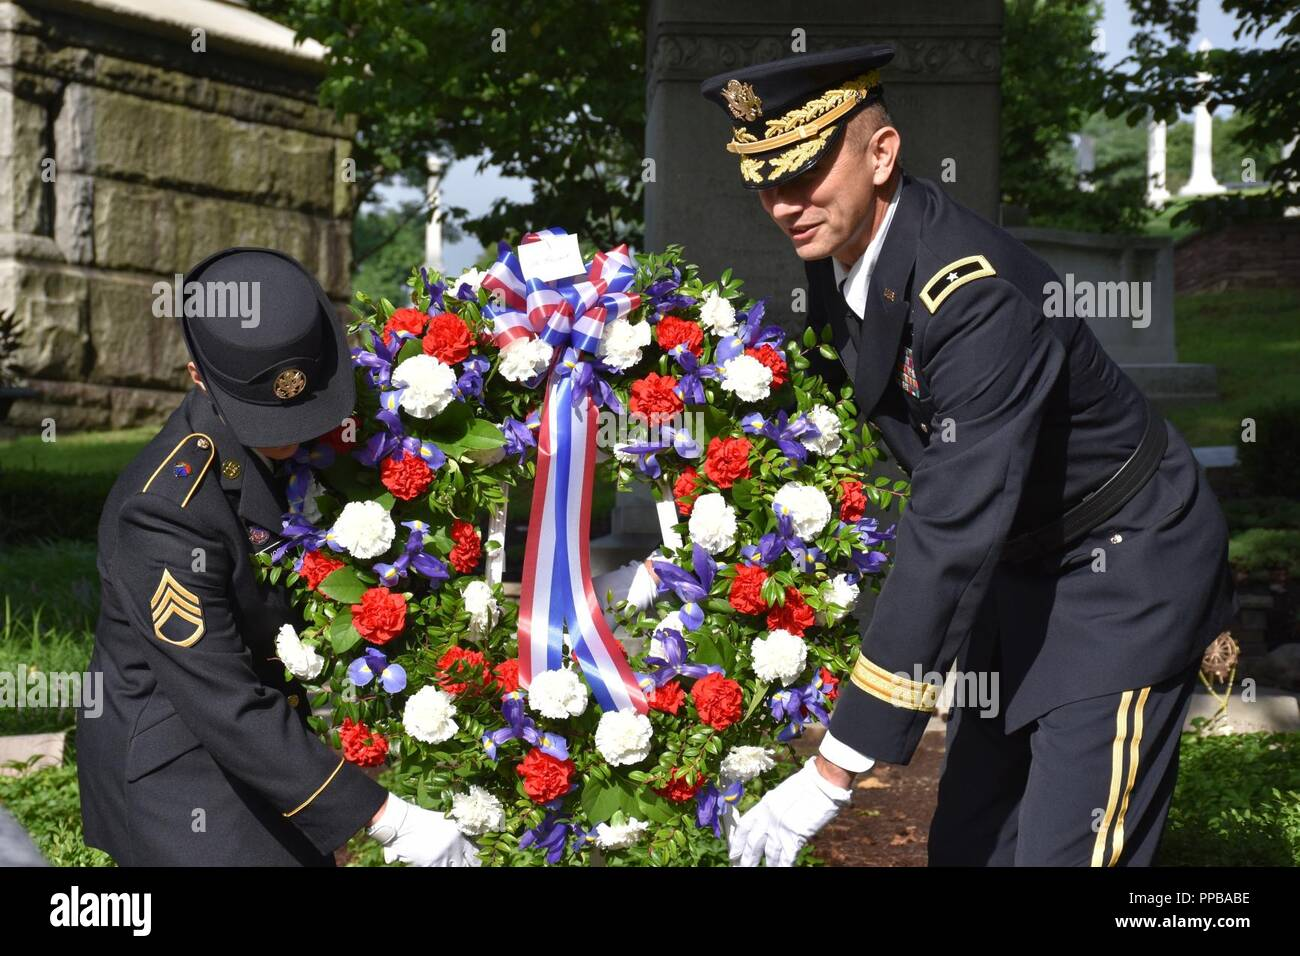 Brigadier Gen. Tony L. Wright, 88th Readiness Division deputy commanding general (right), and Staff Sgt. Jill Spencer (left), 88th RD executive assistance to the commanding general, lay a wreath at ceremony for President Benjamin Harrison at Crown Hill Cemetery, in Indianapolis, on Aug. 18, to commemorate the Hoosier President's 185th birthday. (US Army Stock Photo